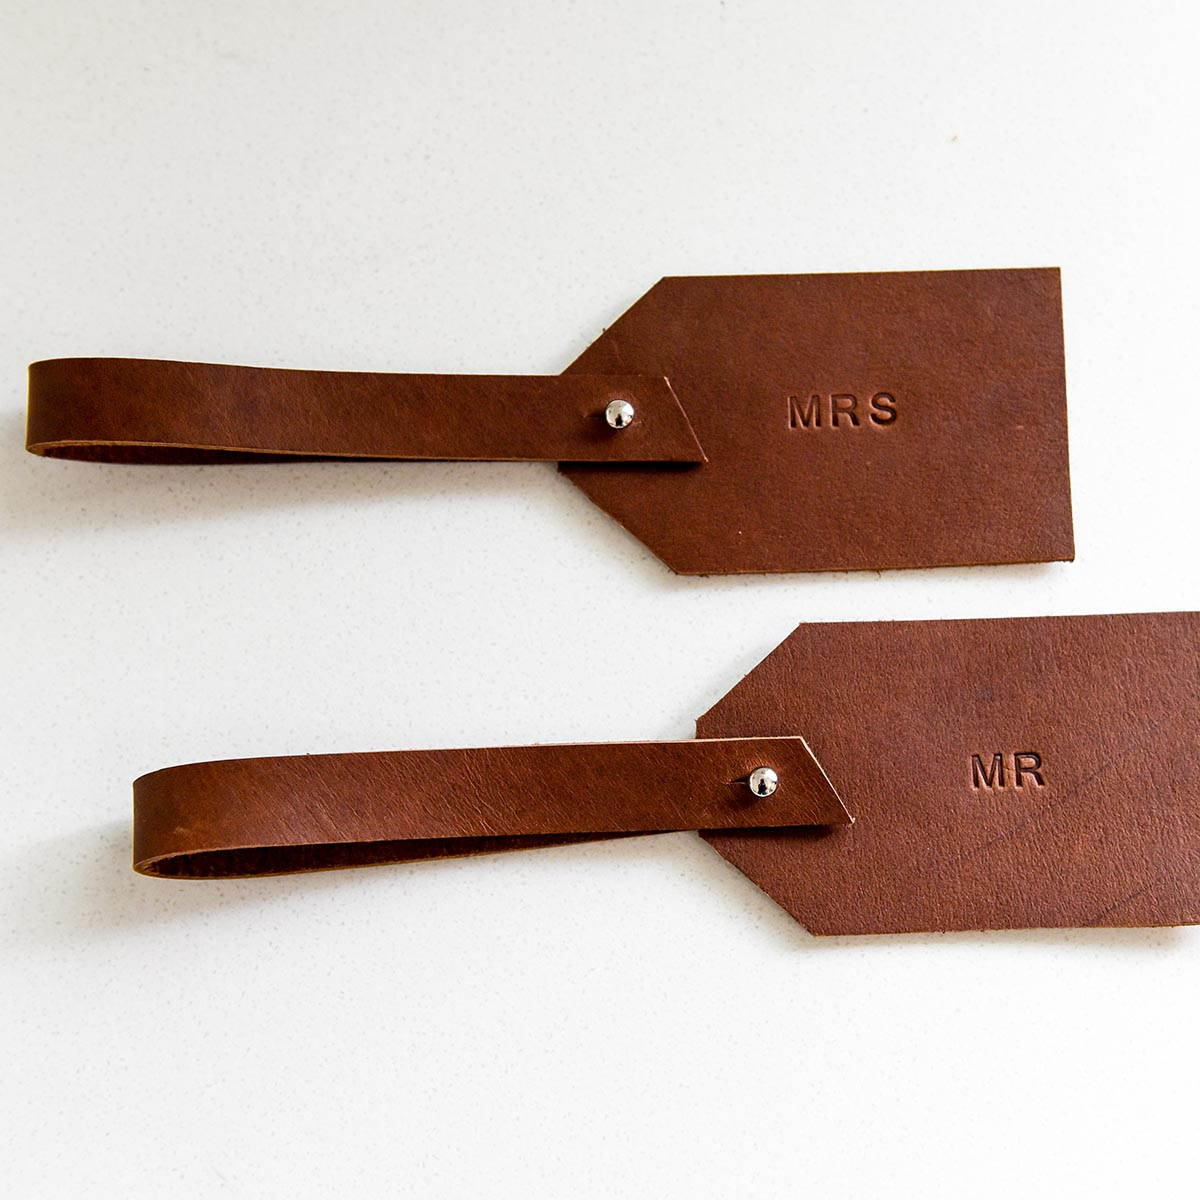 Mr and Mrs Leather Luggage Tags - Dark Tan with Silver